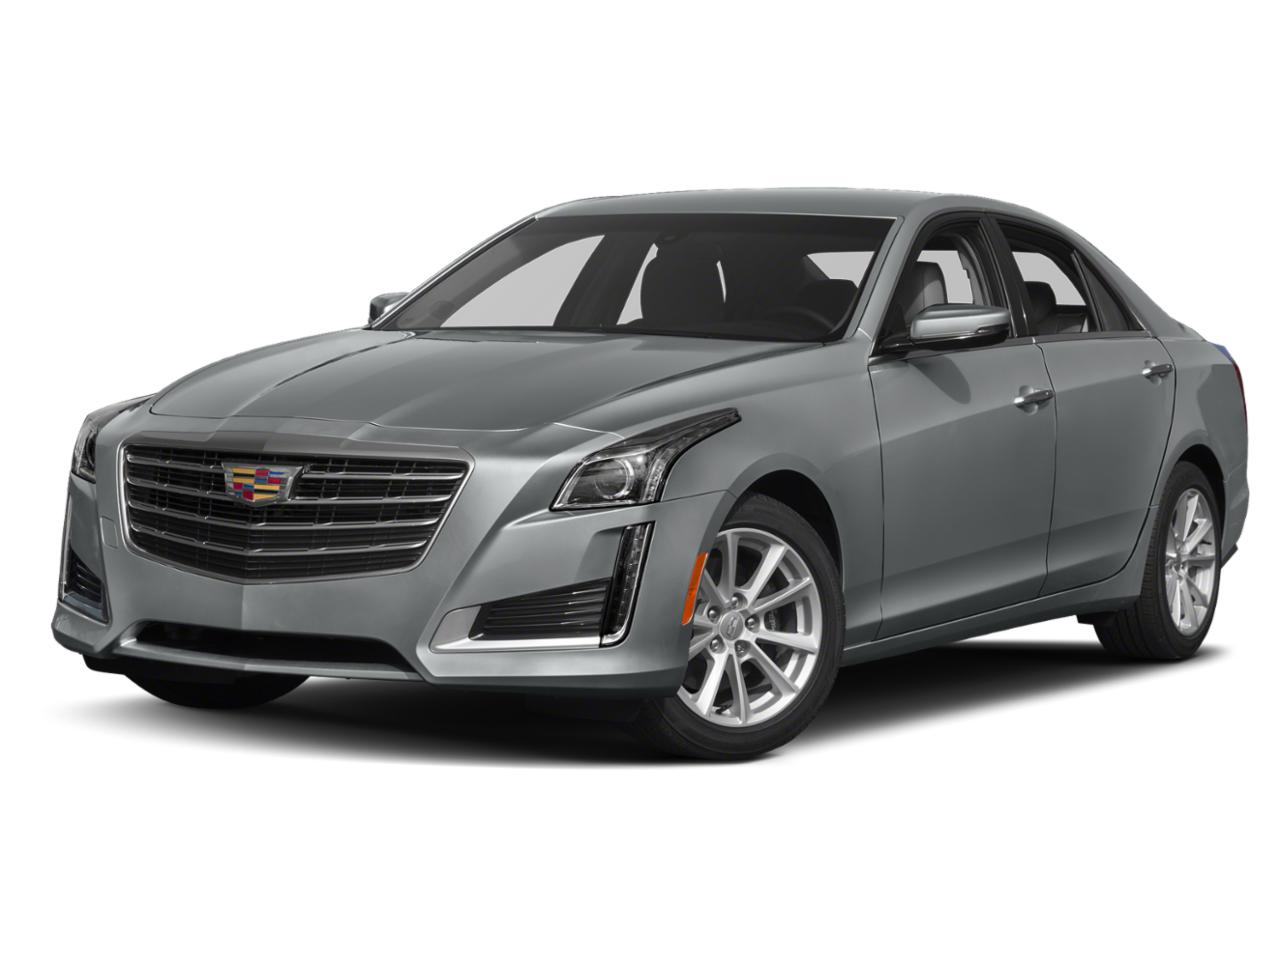 2019 Cadillac CTS Sedan Vehicle Photo in Friendswood, TX 77546